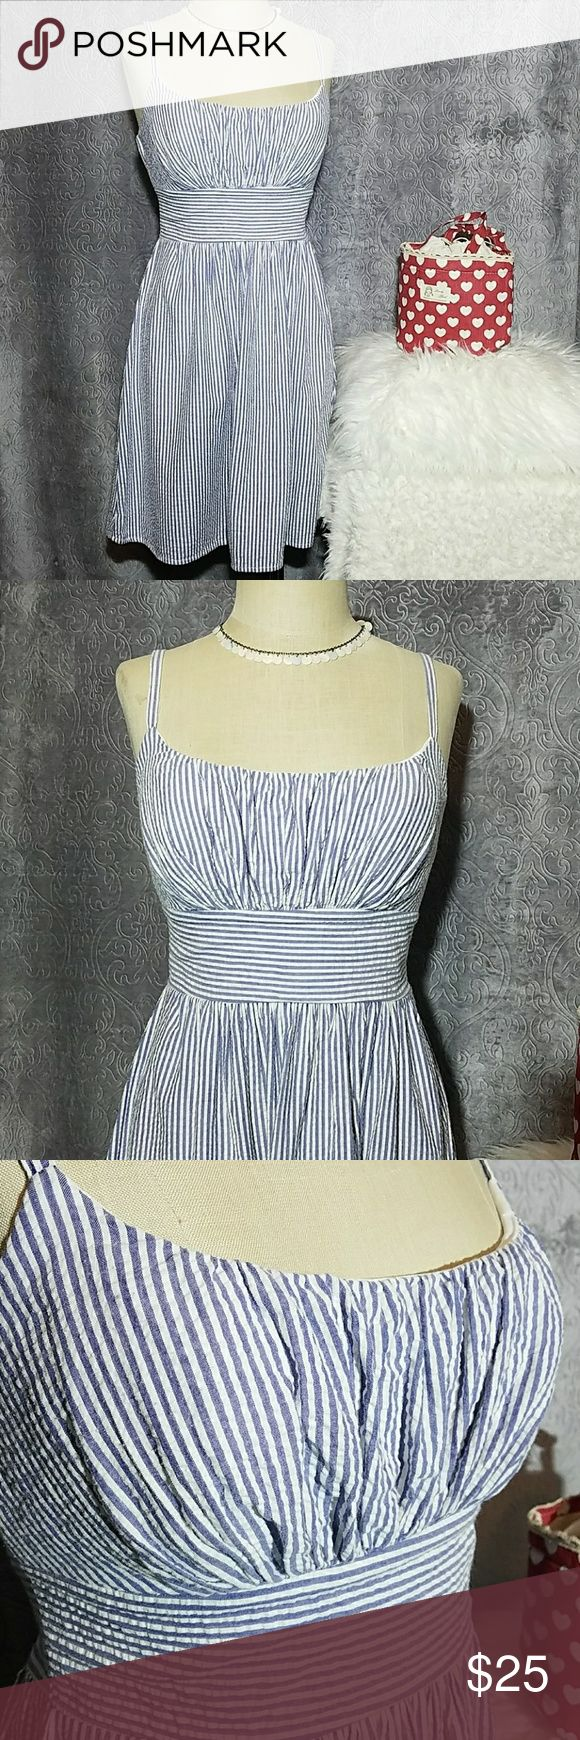 B. Smart sear sucker striped dress 8 Blue and white pin striped sear sucker, adjustable straps, lighted padded and lined chest. 100% cotton. Great condition.  Size 8 B.Smart Dresses Midi